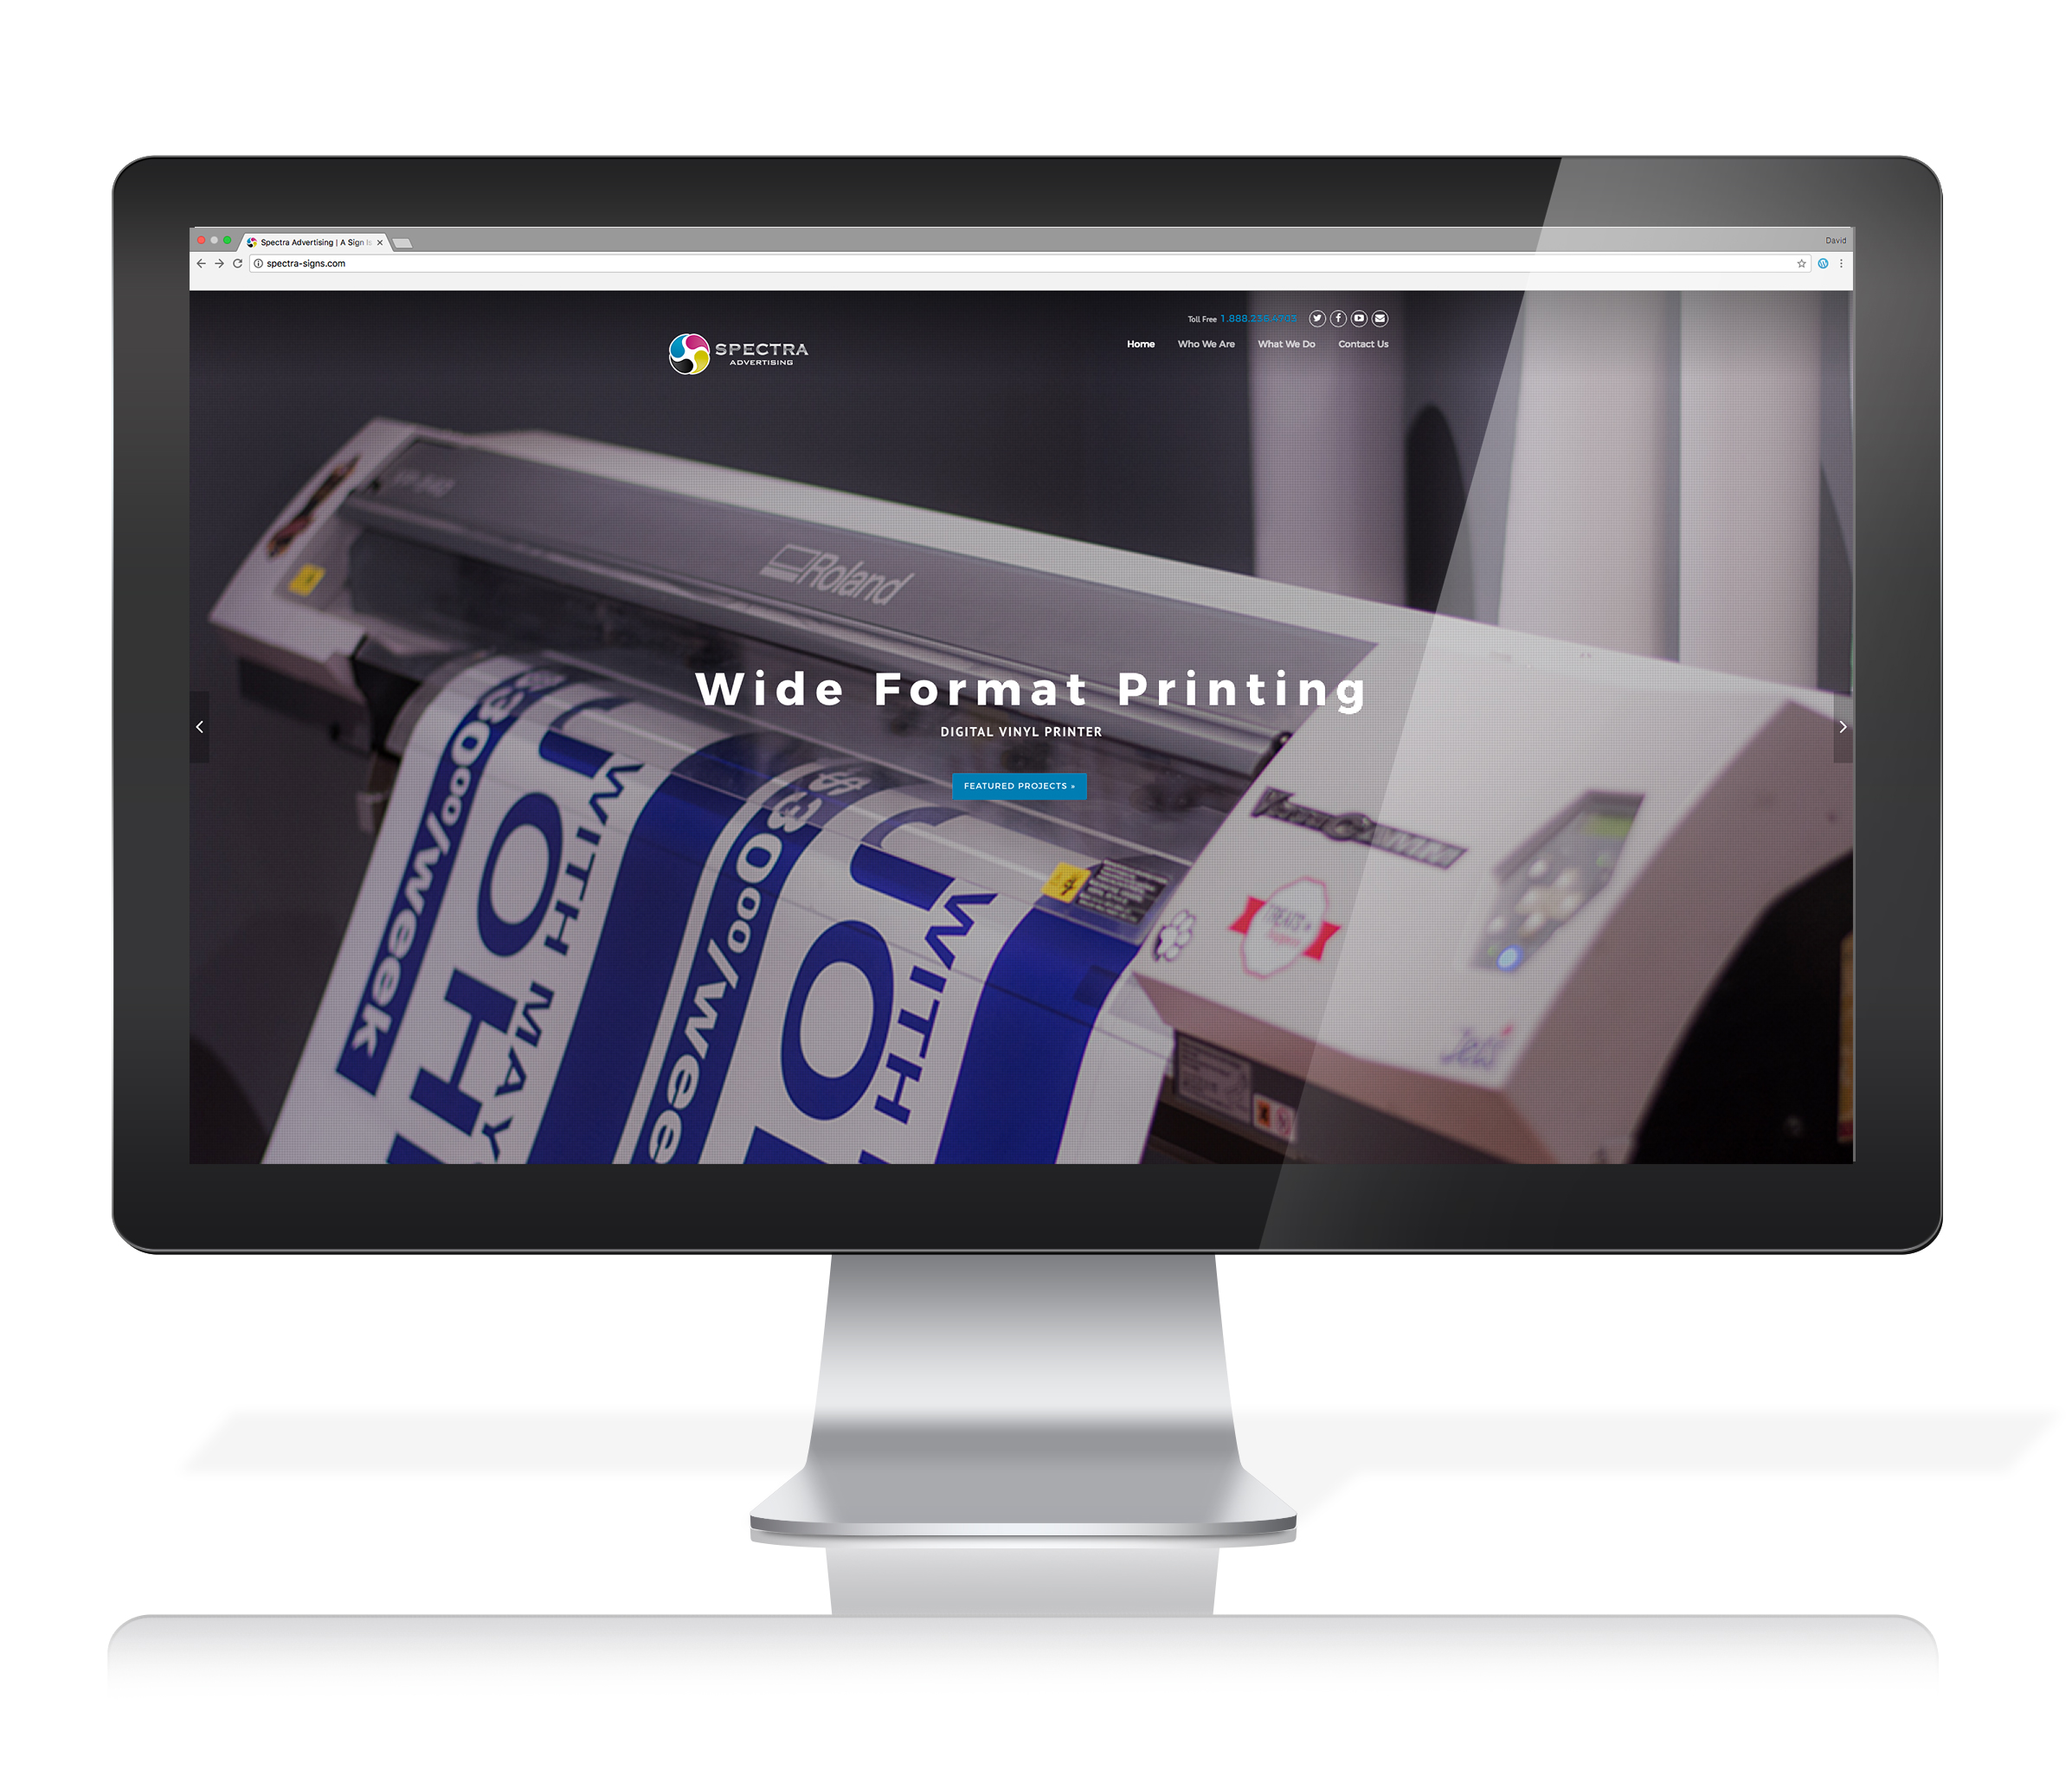 Spectra's Wide Format Printing